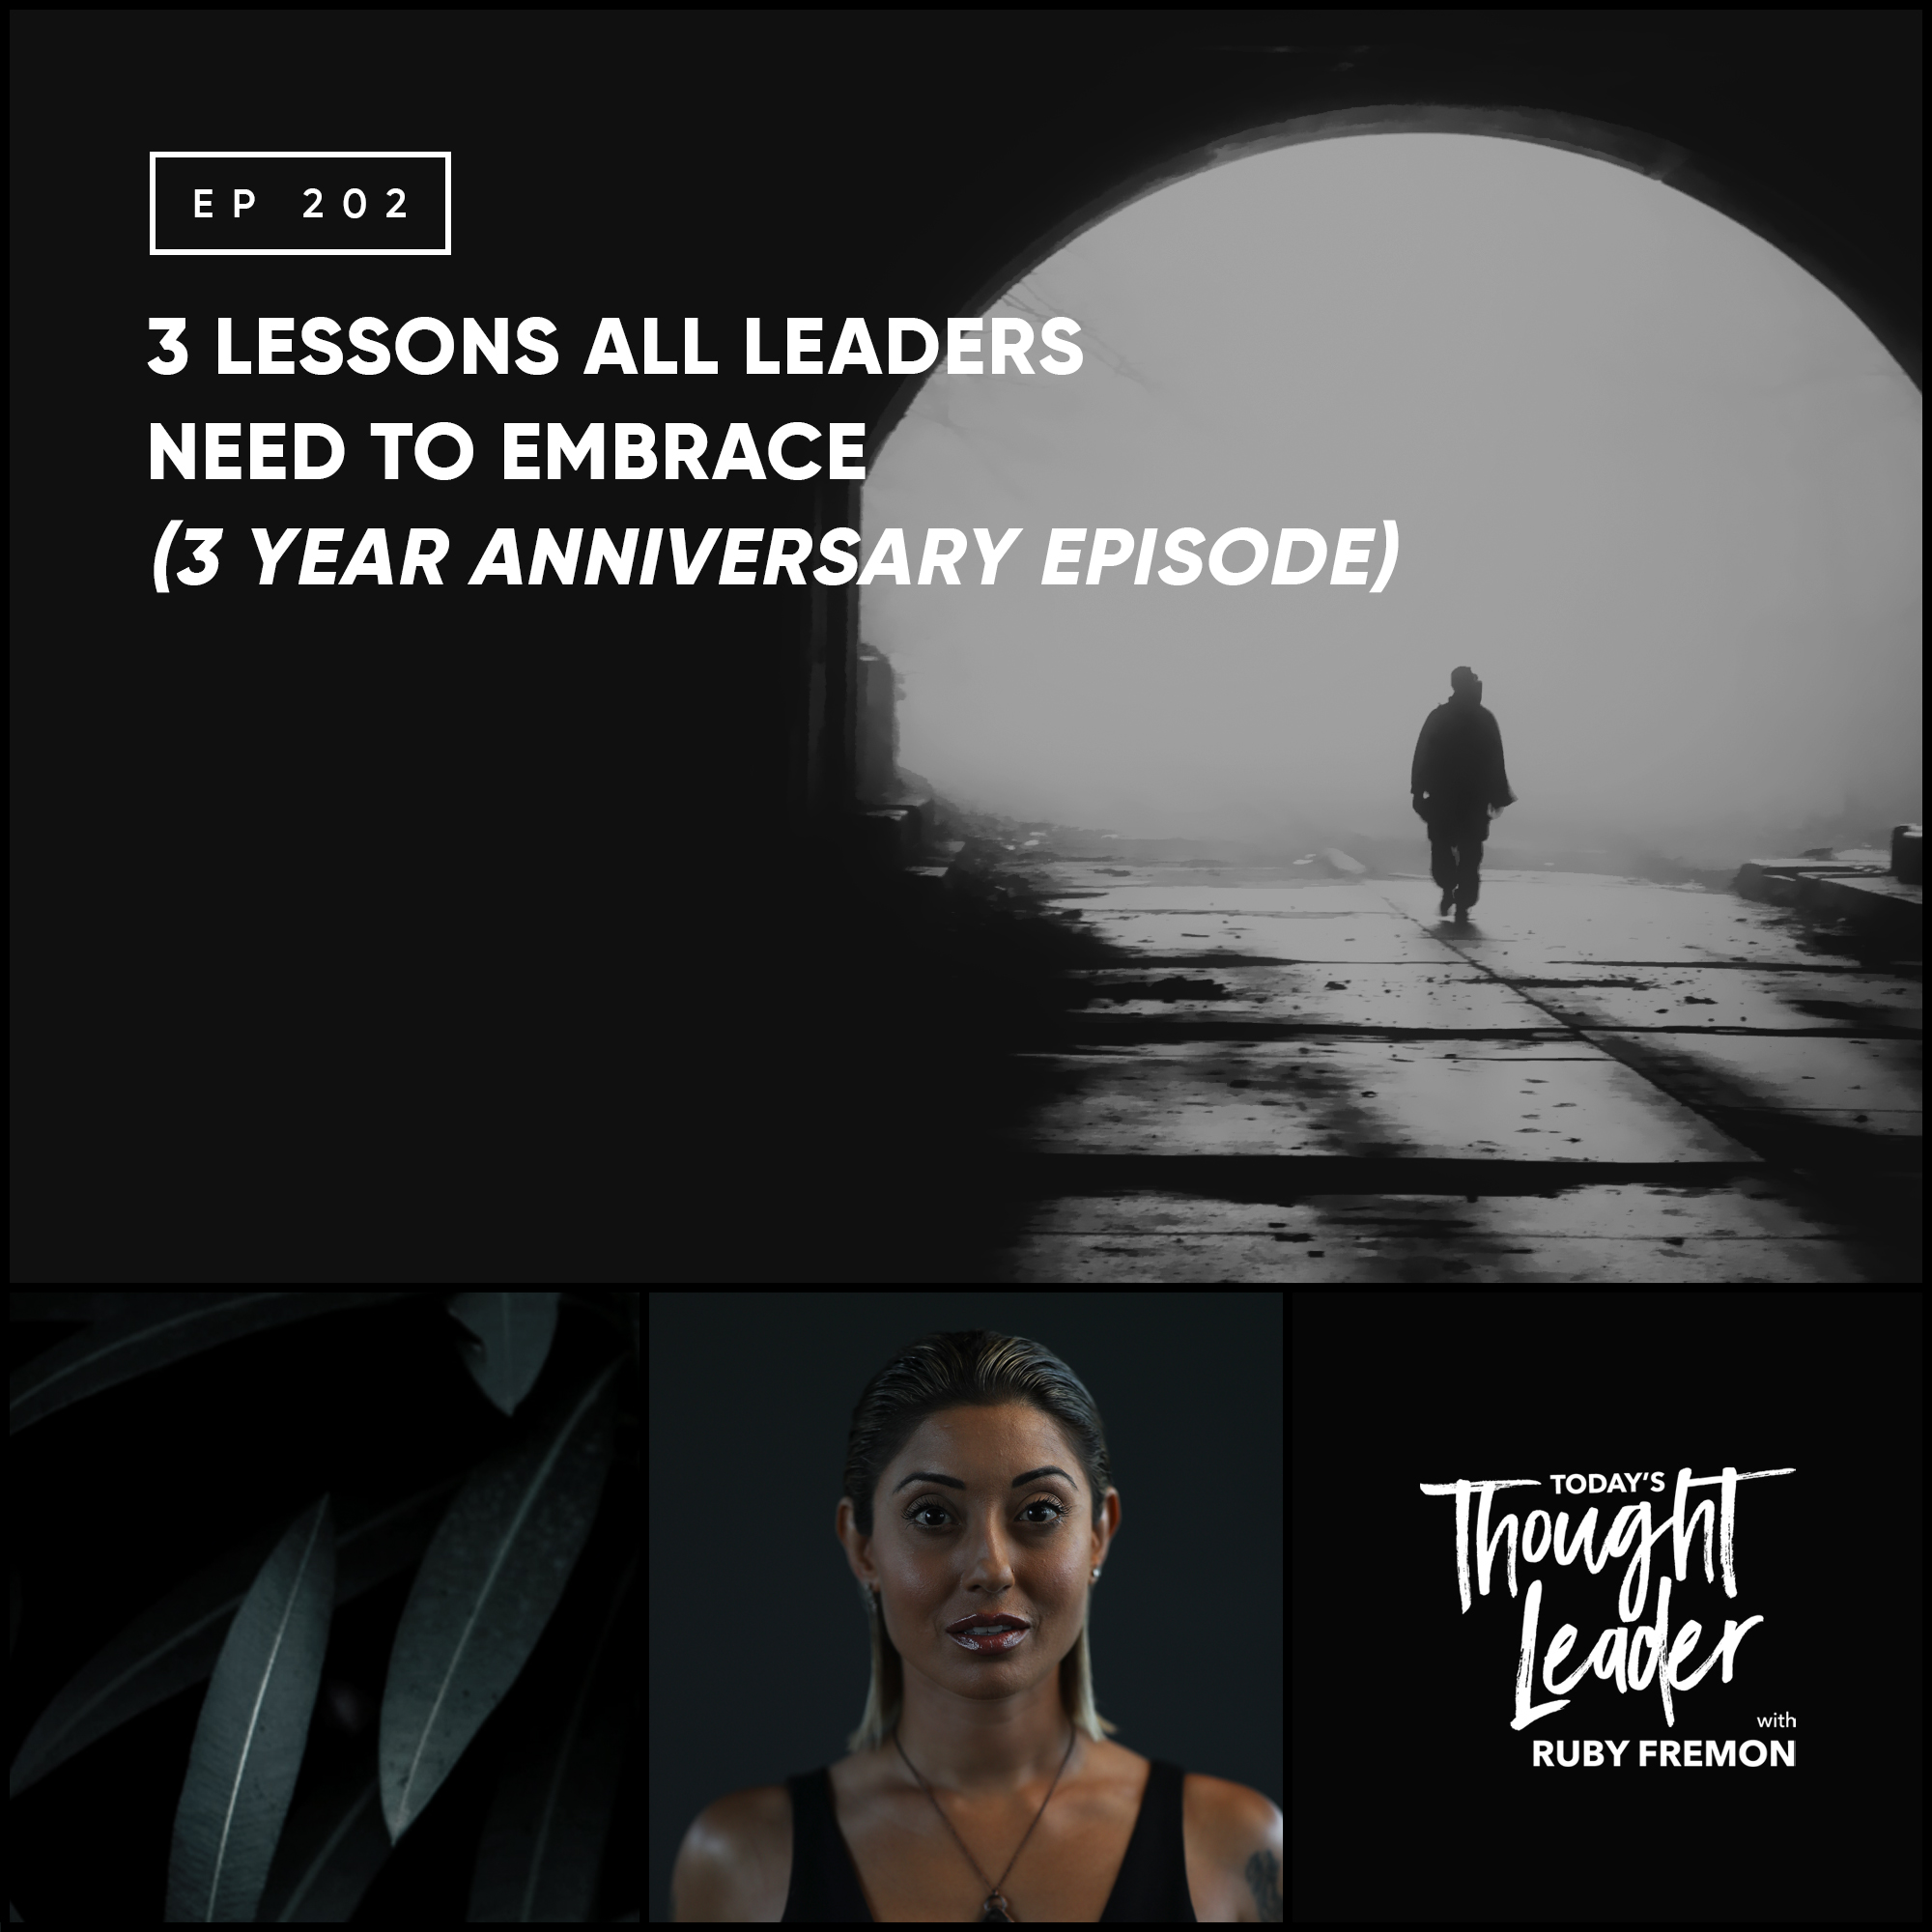 202: 3 Lessons All Leaders Need to Embrace (3 Year Anniversary Episode)